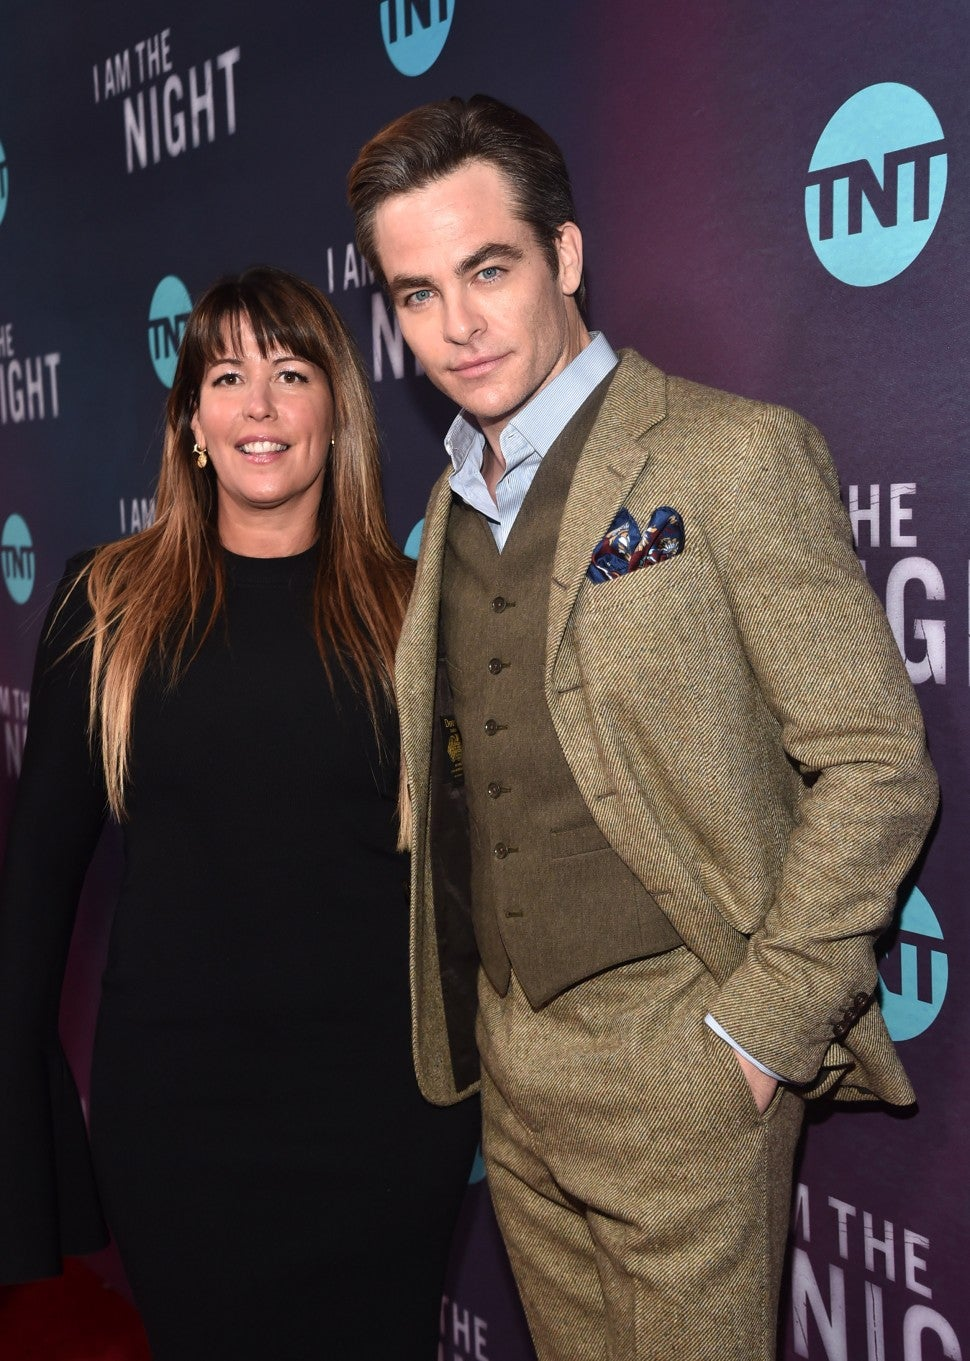 Patty Jekins and Chris Pine I Am the Night LA Premiere